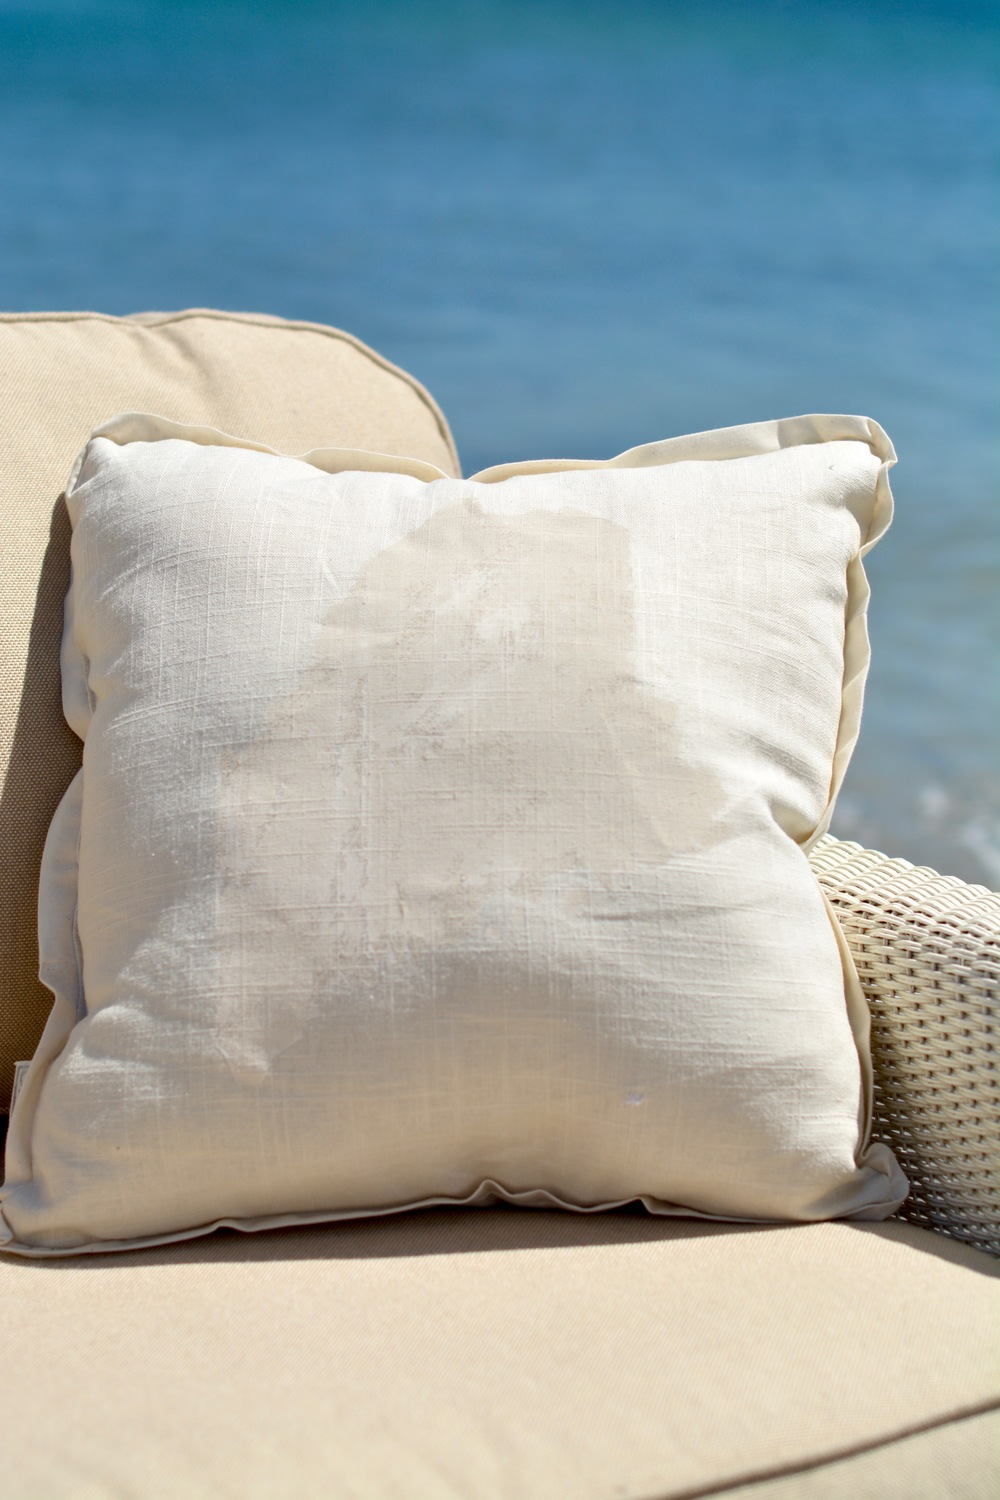 seacoast-lately-portsmouth-new-hampshire-blog-seagate-studio-maine-pillow.jpg